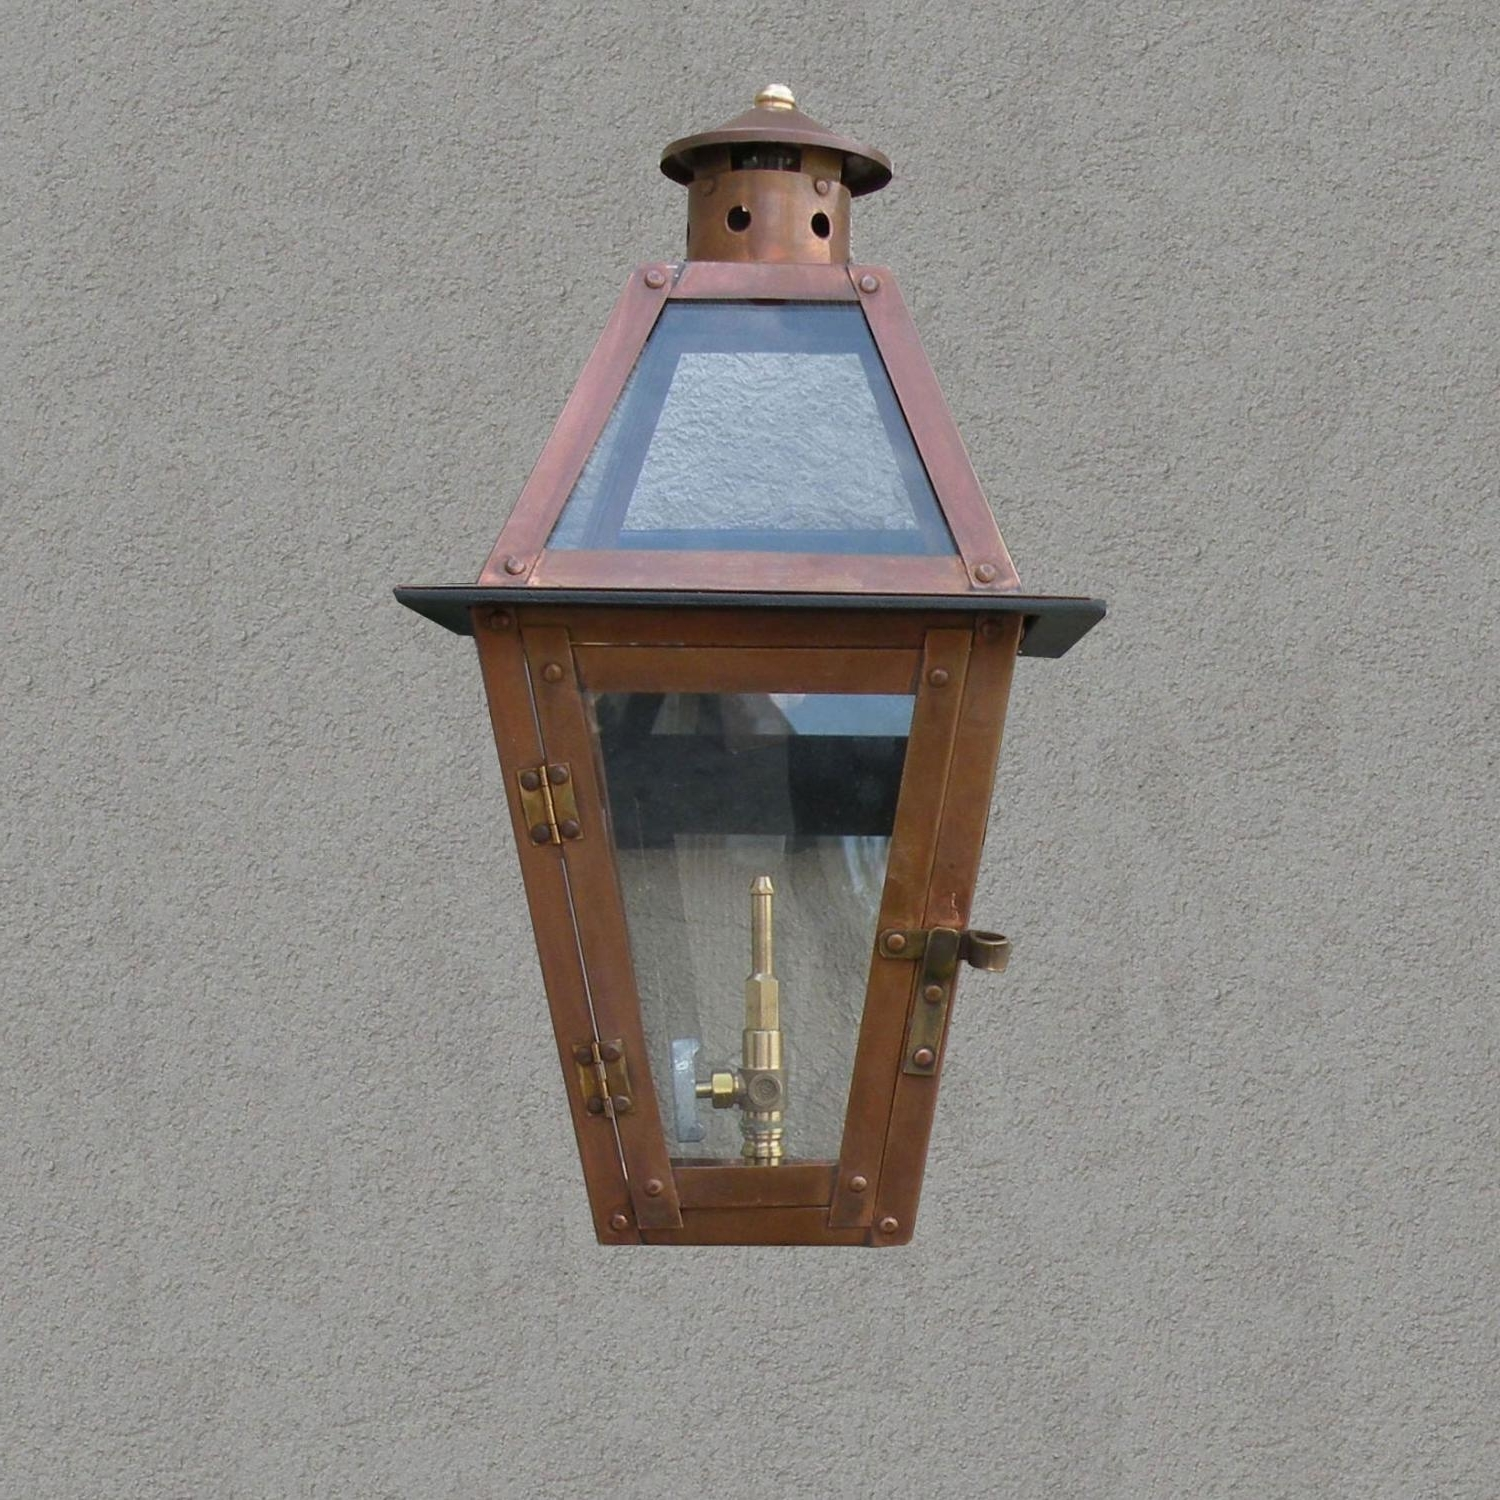 2019 Outdoor Wall Gas Lights In Regency Gl15 Chateau Natural Gas Light With Open Flame Burner And (View 2 of 20)